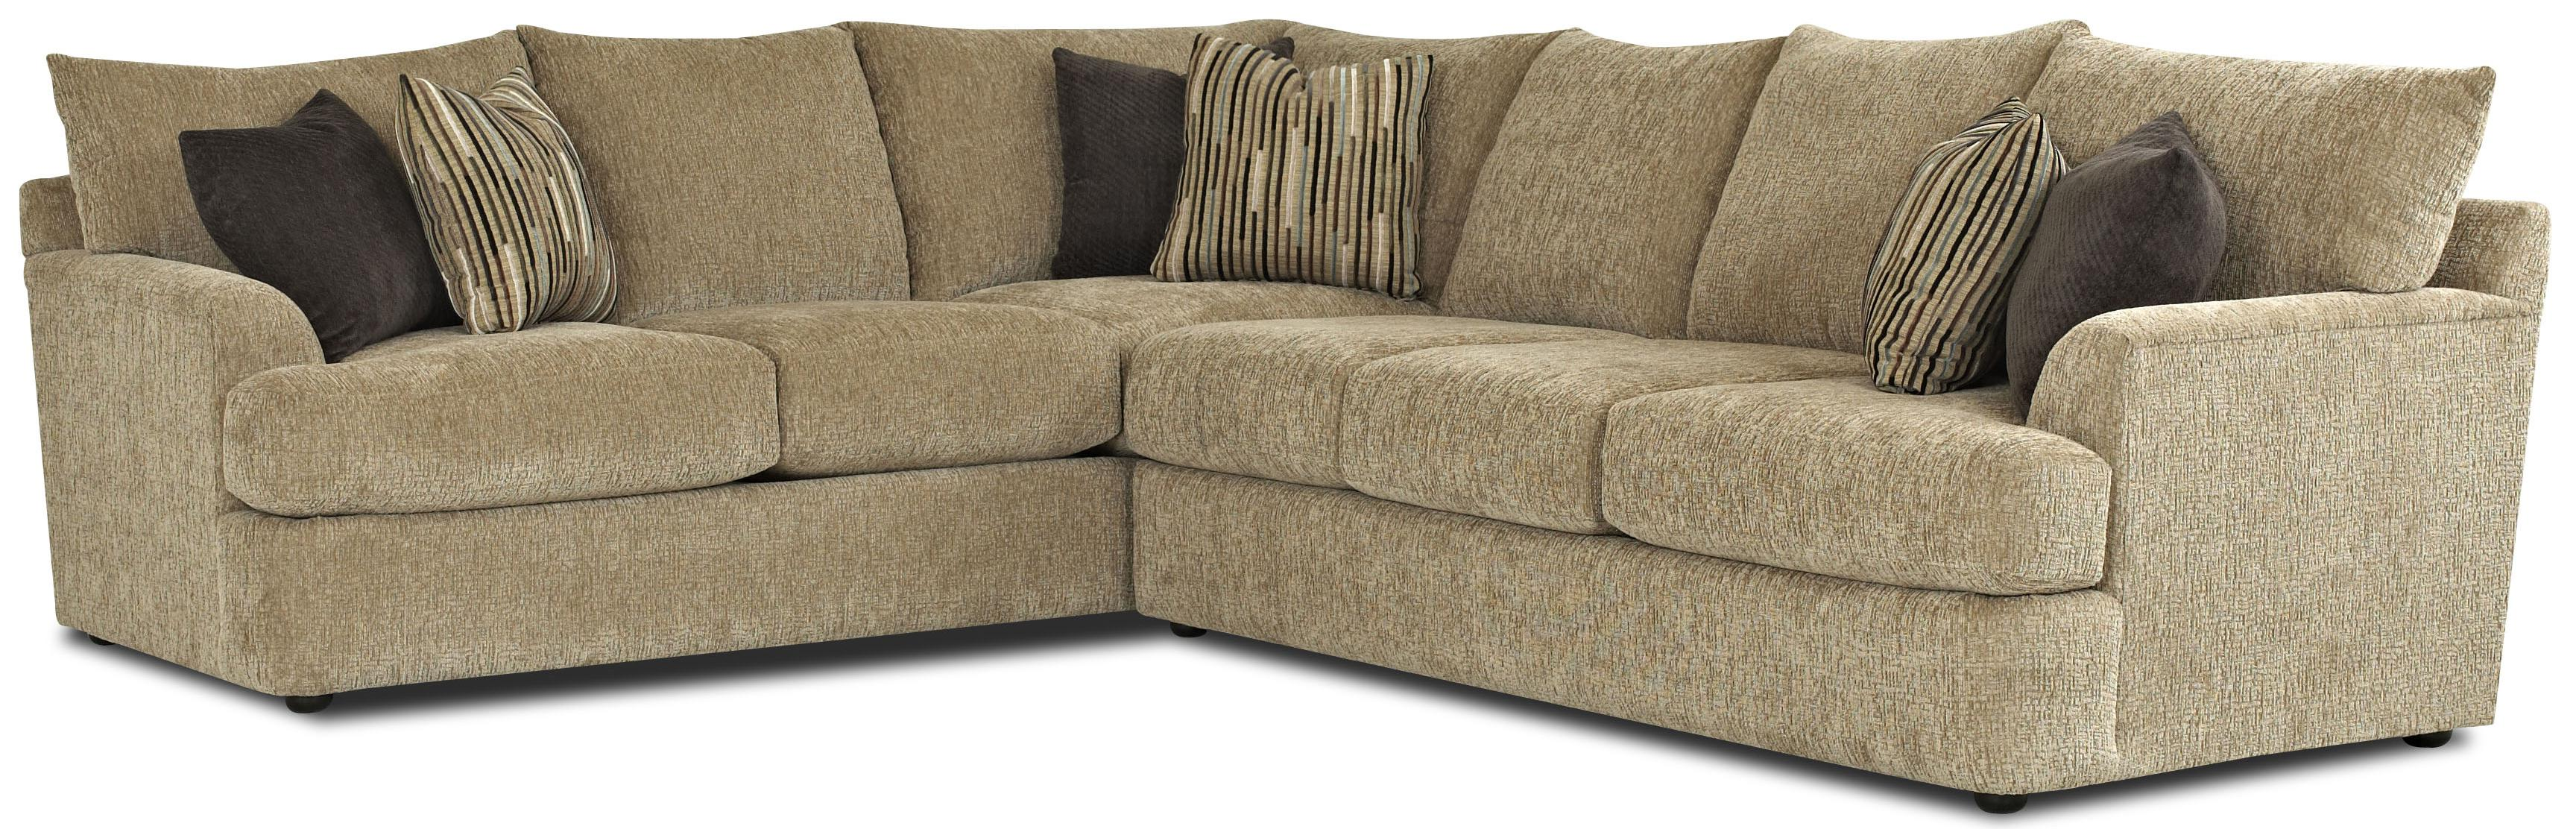 Findley Contemprary L Shaped Sectional Sofa by Klaussner